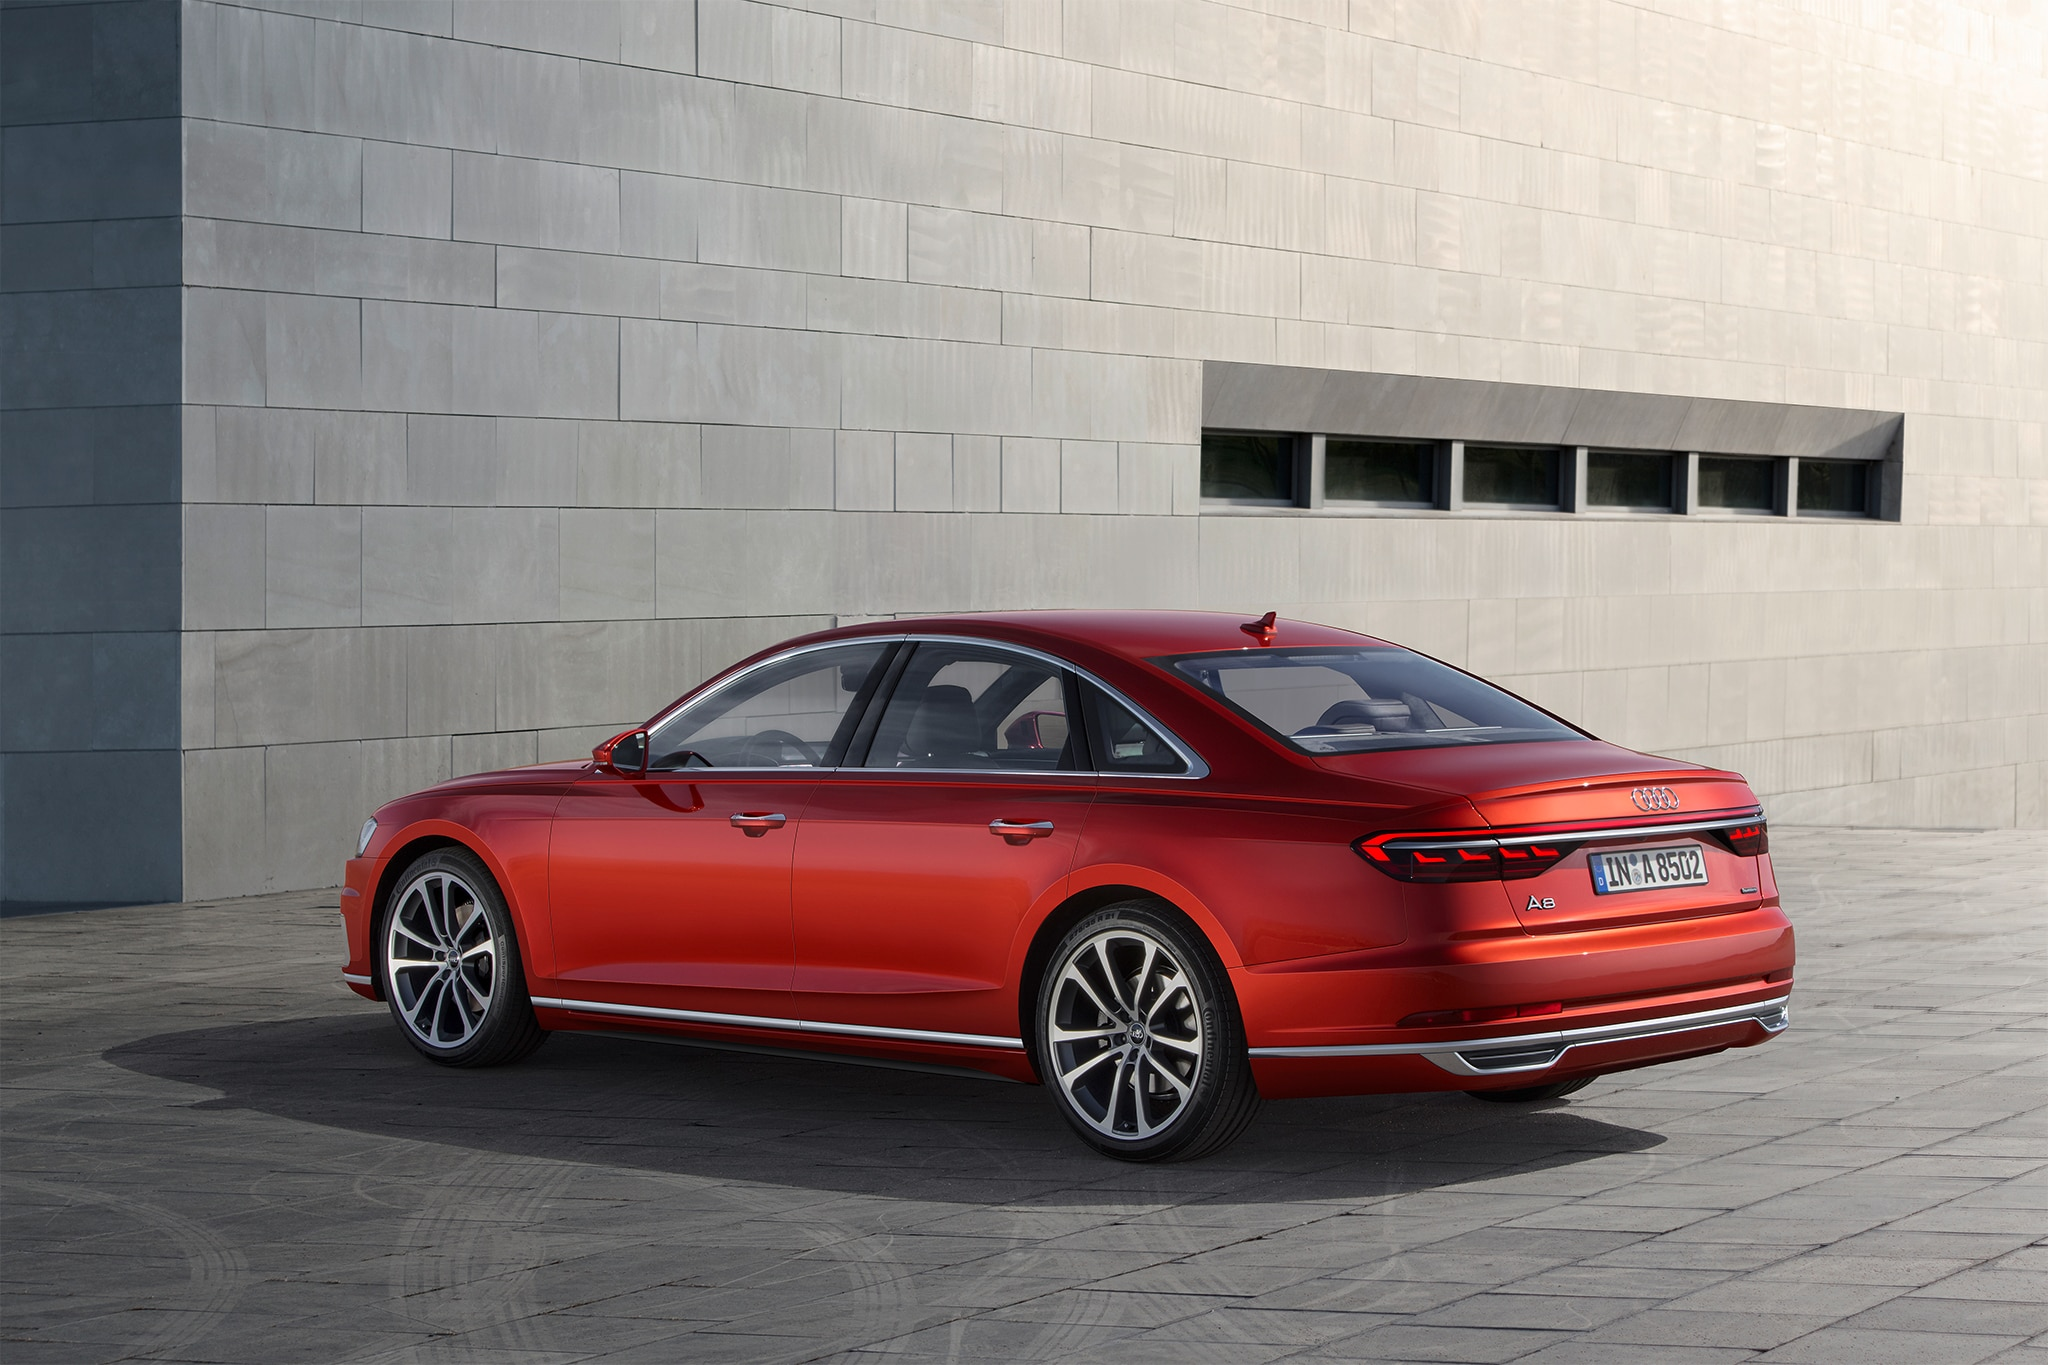 Audi A Rolls In Ready To Drive Itself Automobile Magazine - Audi car that parks itself